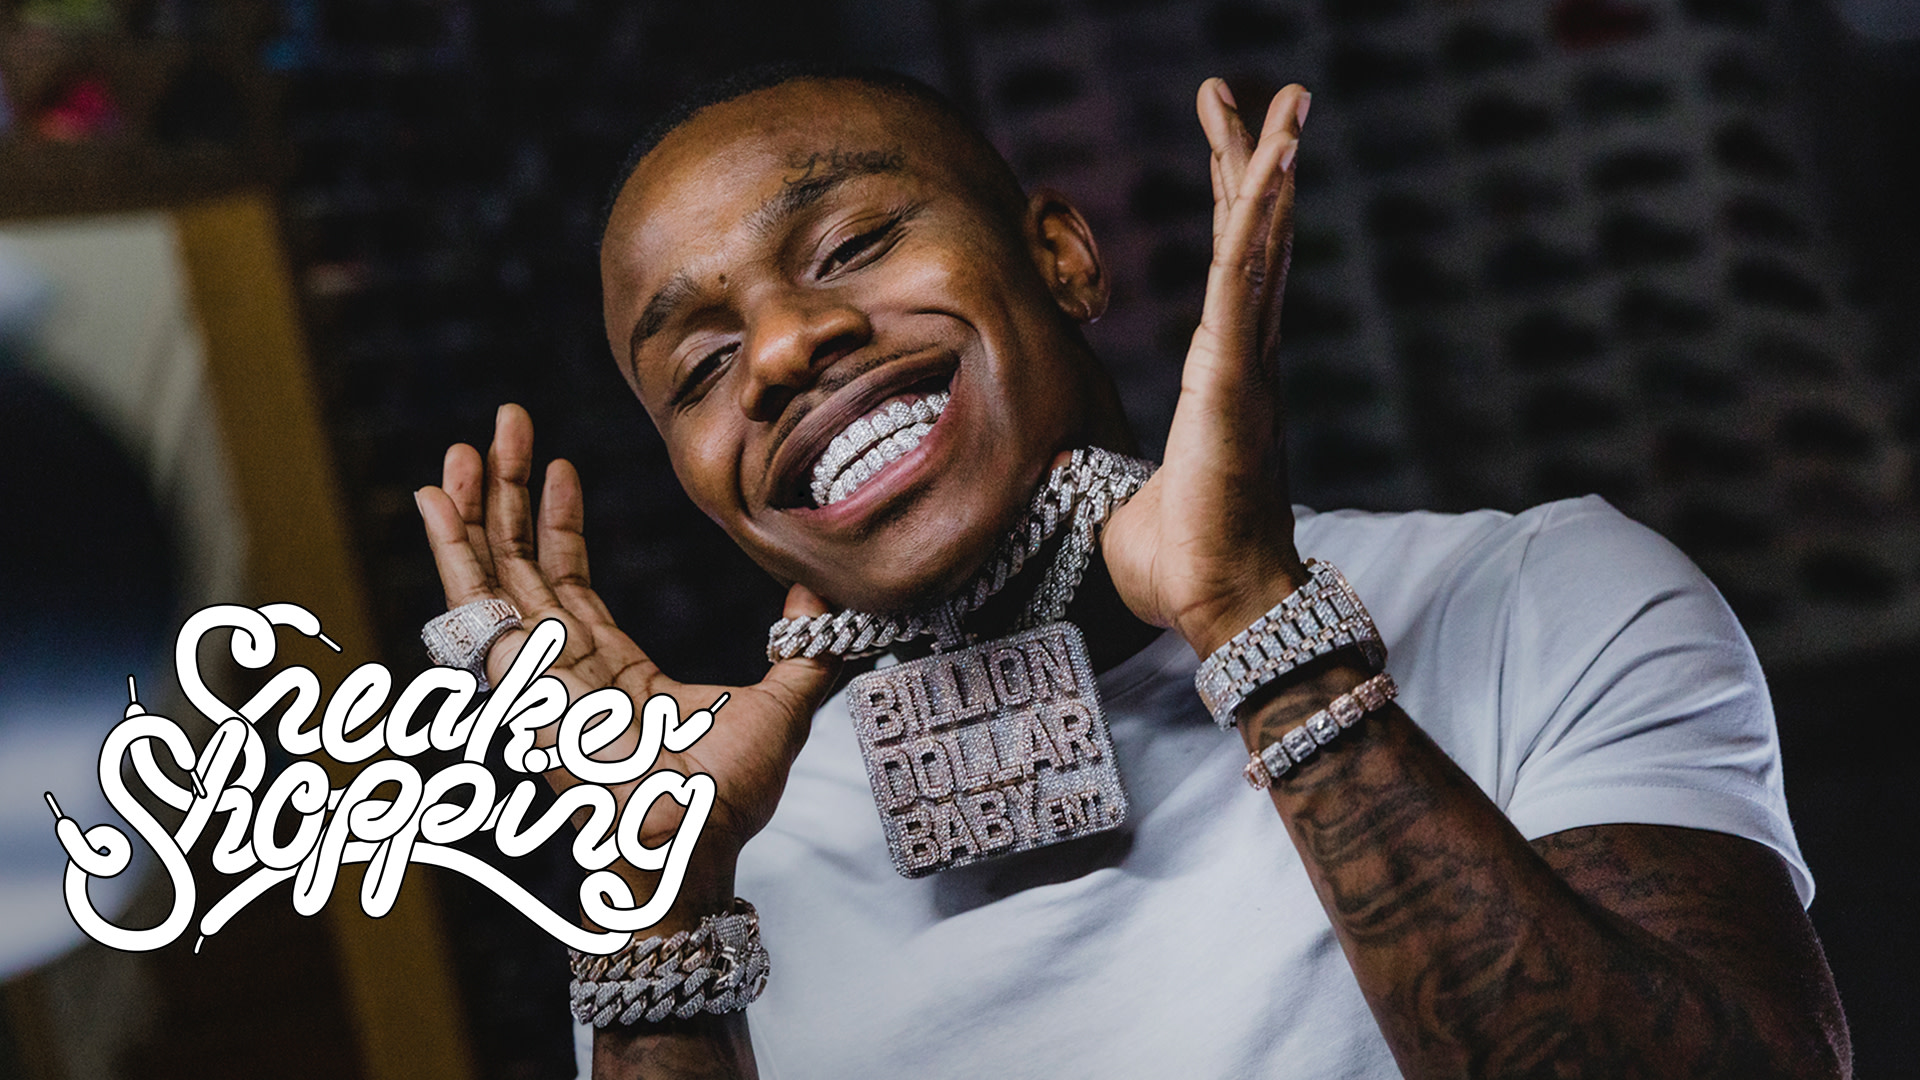 DaBaby Goes Sneaker Shopping With Complex | Sneaker Shopping